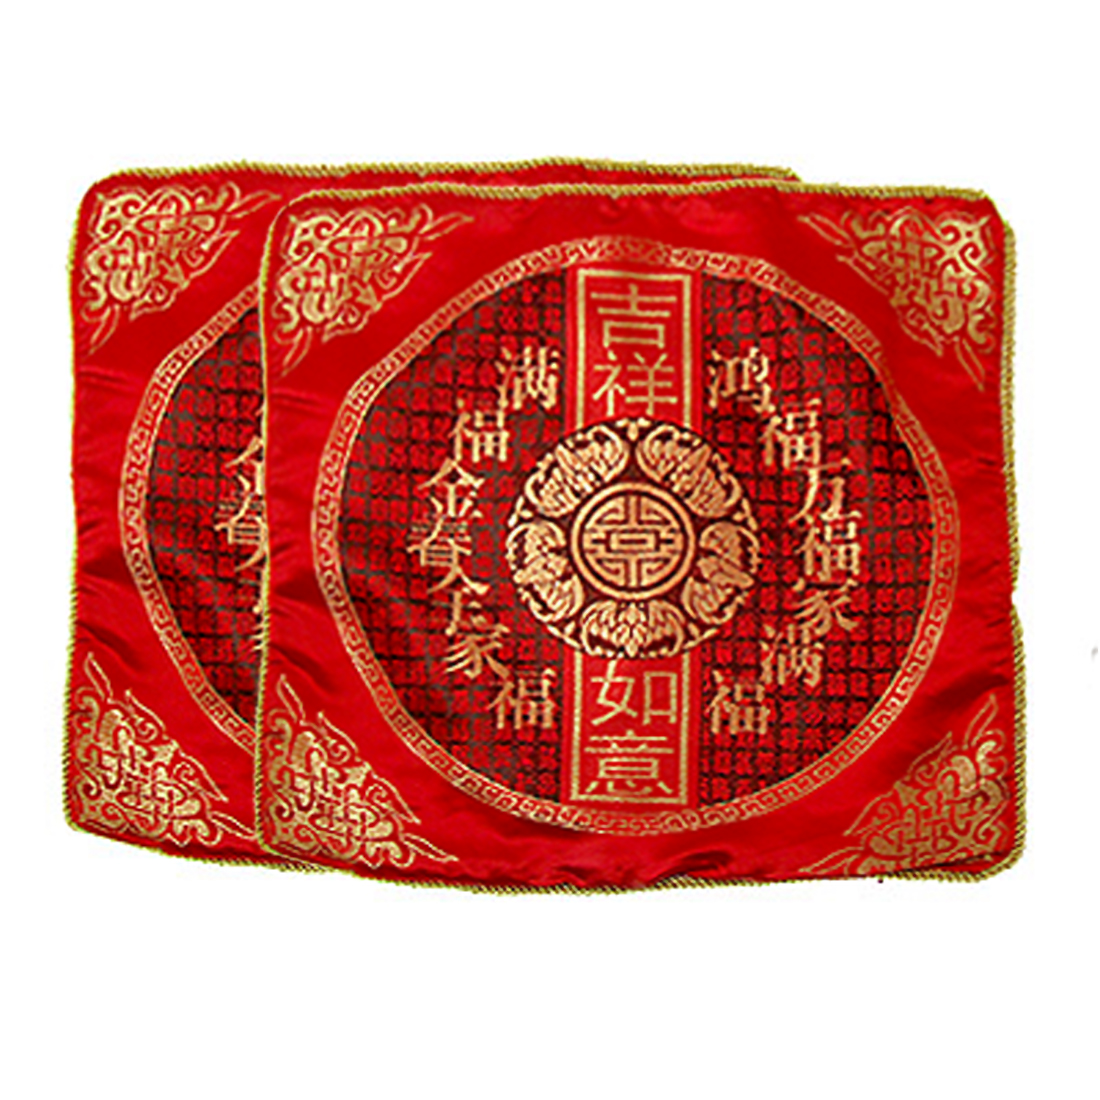 2 Pcs Golden Rim Chinese Character Red Pillow Cover w Zipper